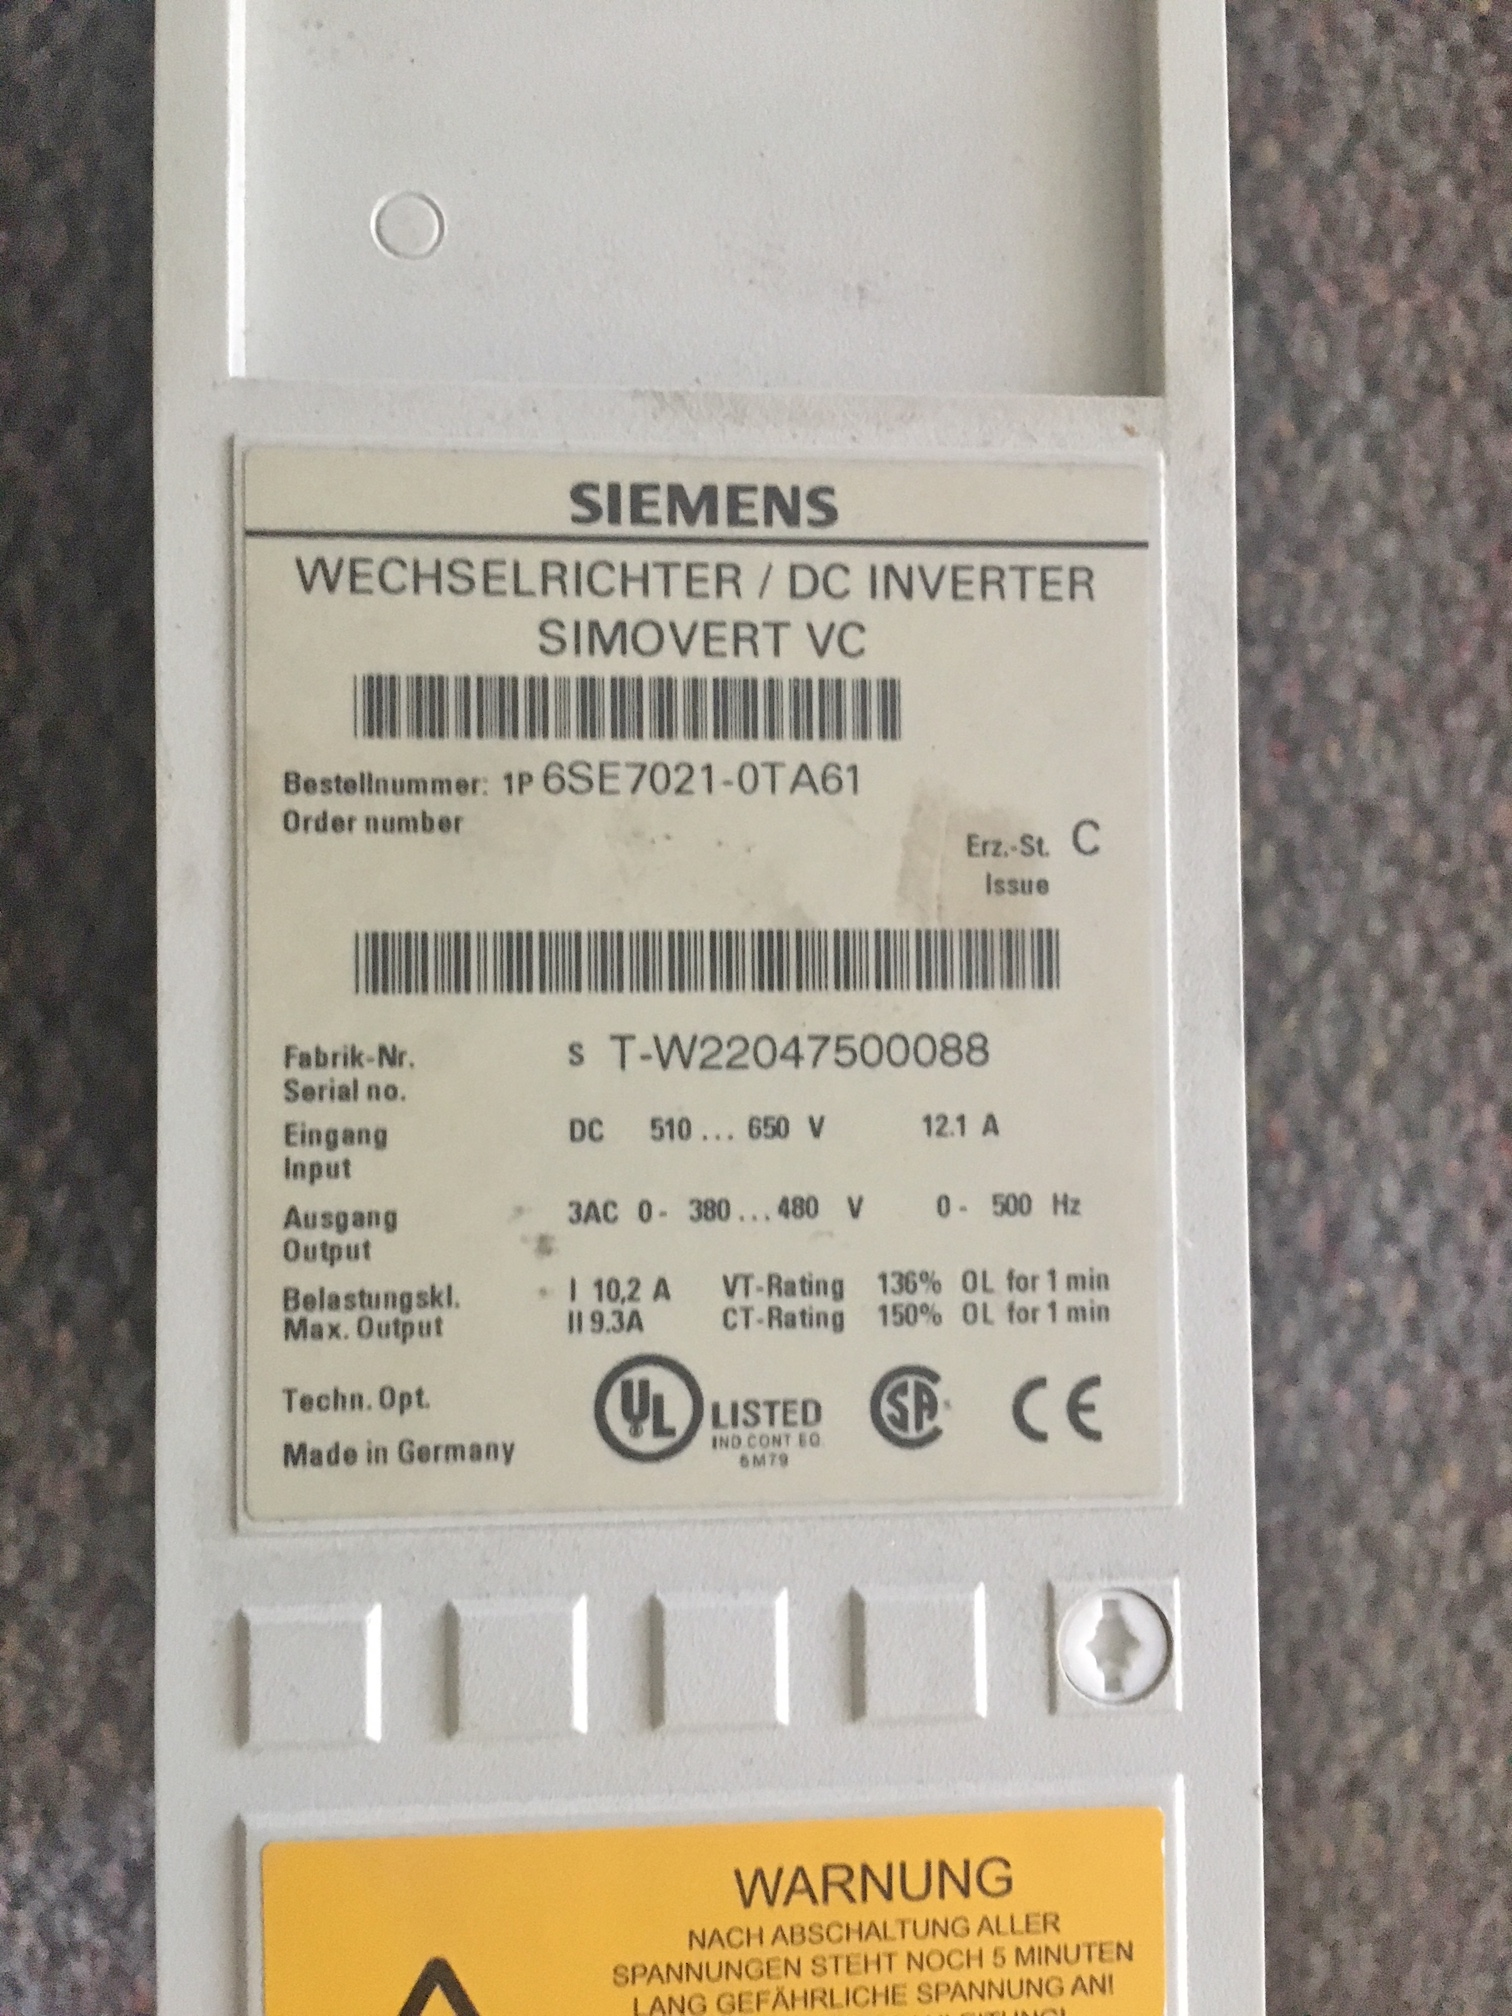 Lot 53 - Lot of 2 Siemens DC Inverter Simovert Drive